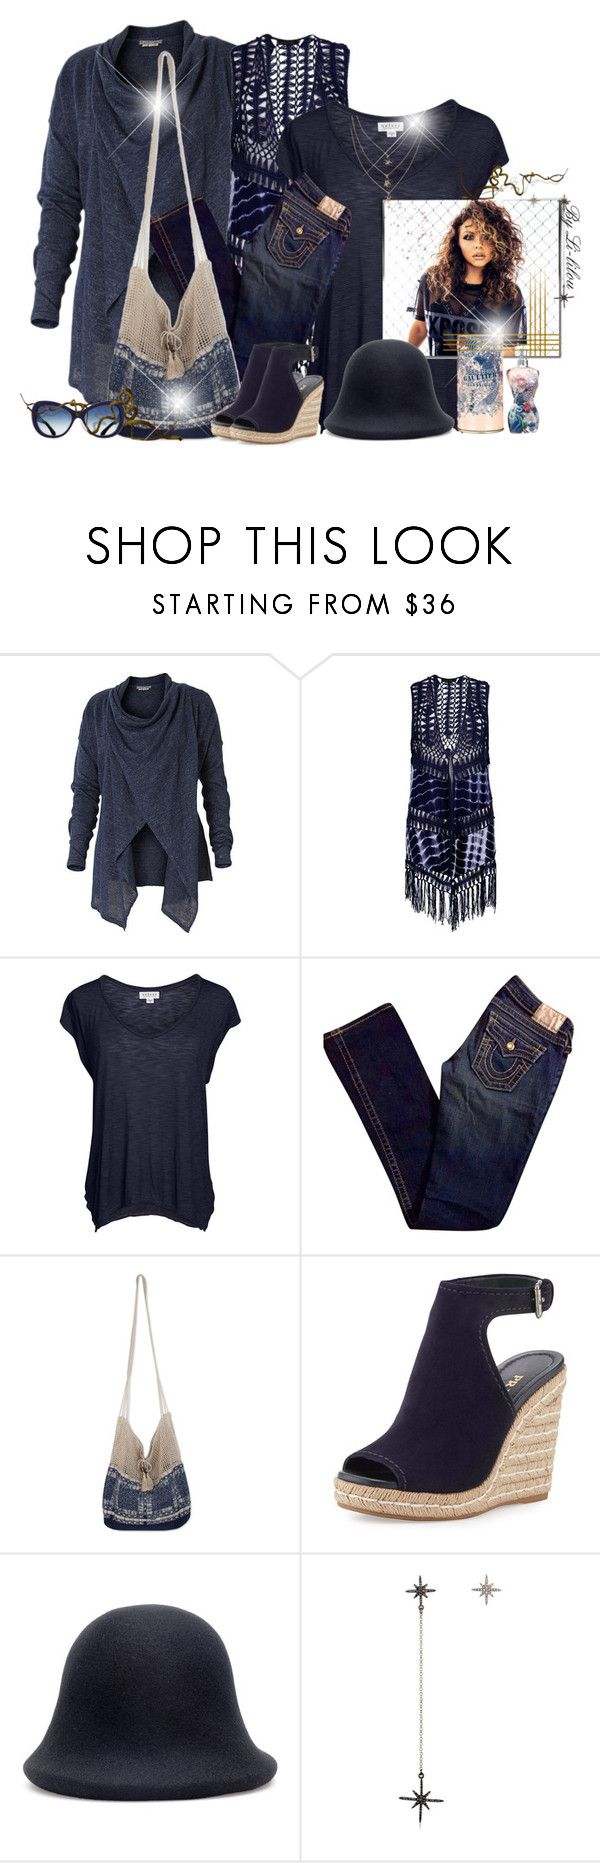 """~Life is blue~"" by li-lilou ❤ liked on Polyvore featuring Royal Robbins, Boohoo, Velvet by Graham & Spencer, True Religion, NOVICA, Prada, Yohji Yamamoto and Federica Tosi"